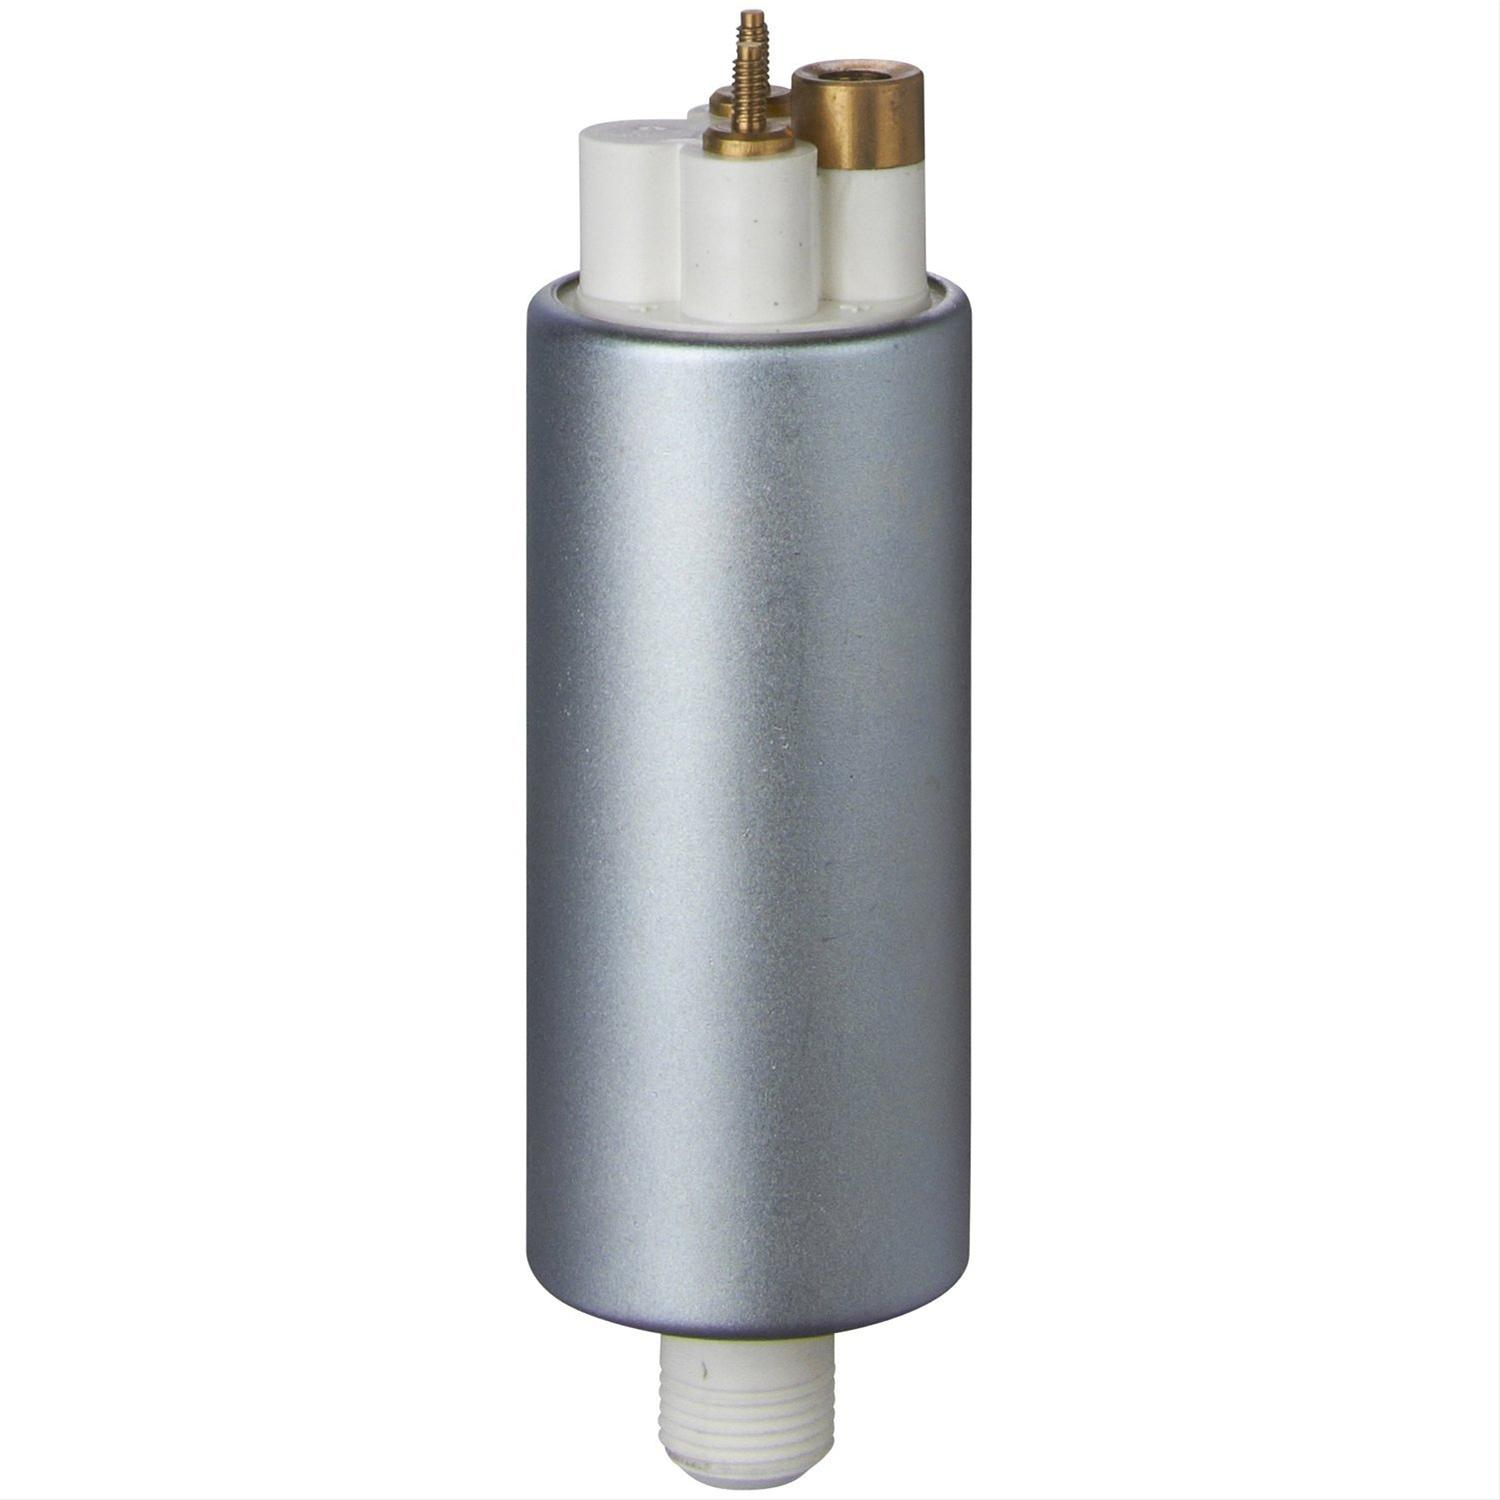 Spectra Premium External Electric Fuel Pumps SP1121 - Free Shipping on  Orders Over $49 at Summit Racing